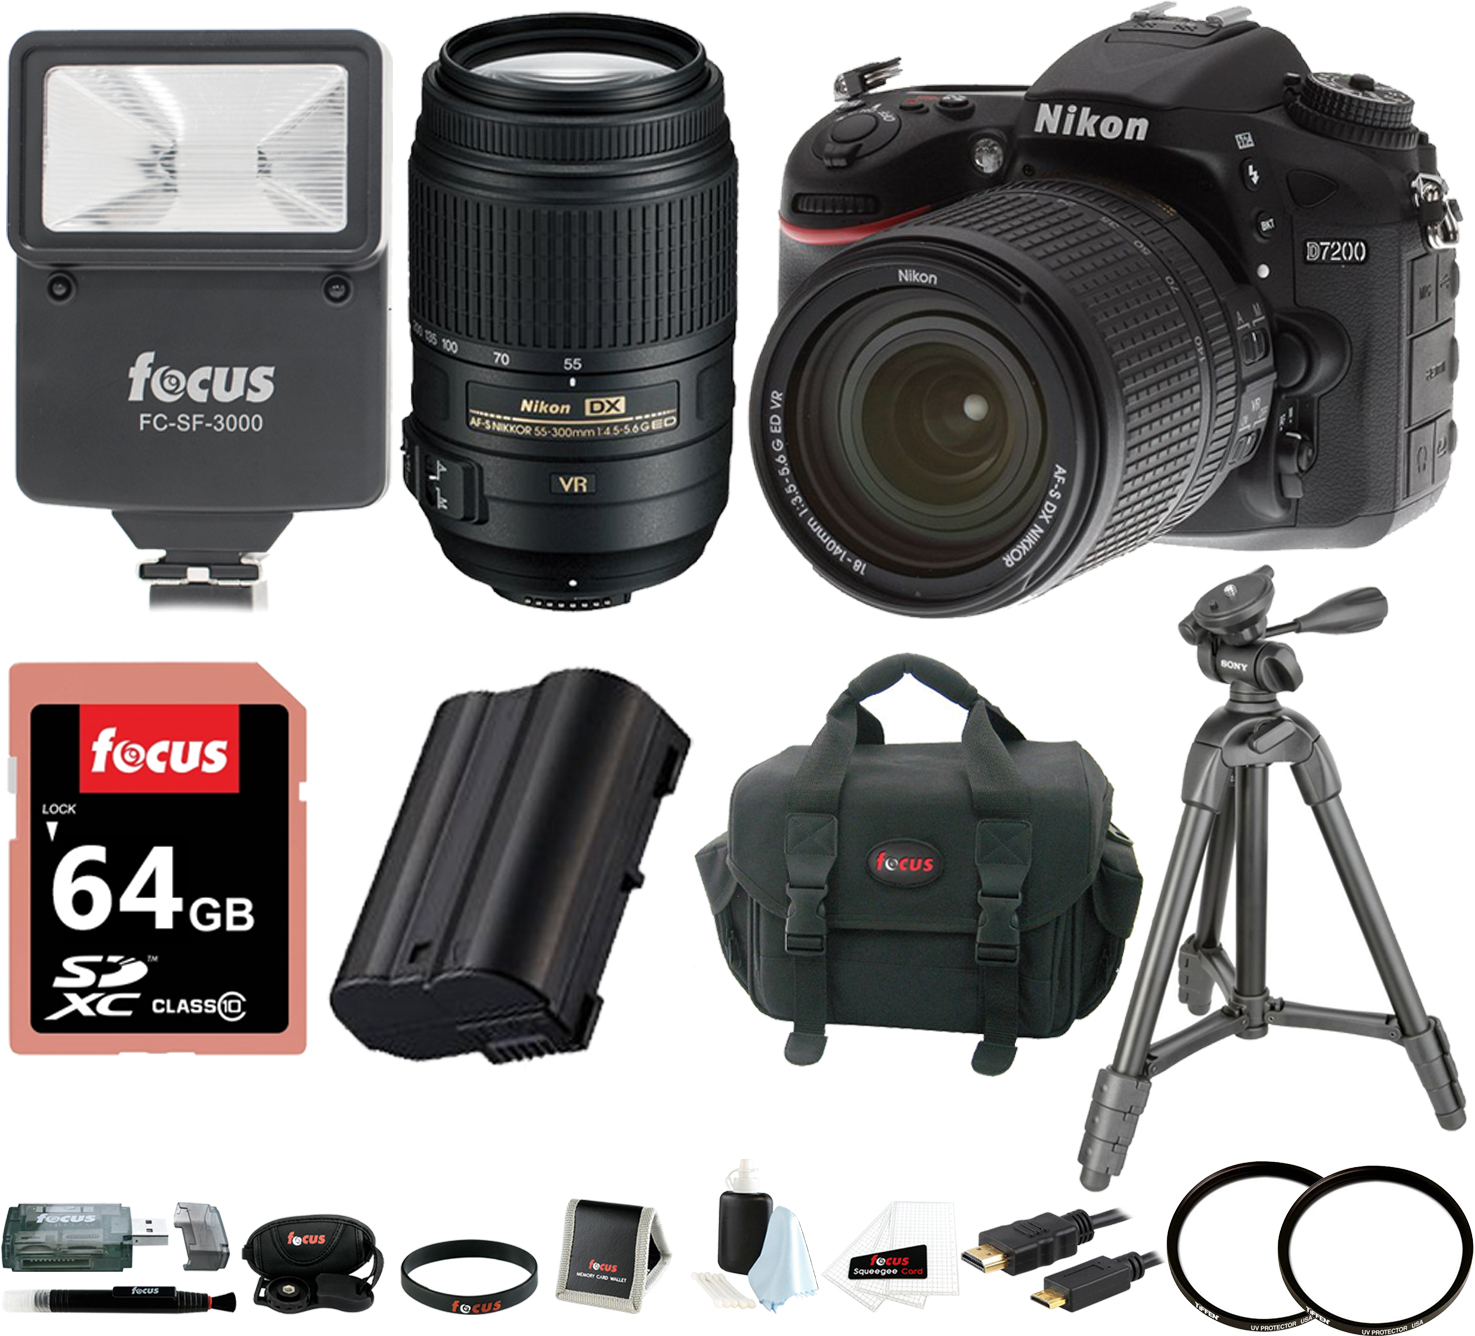 Nikon D7200 DSLR Camera (Black) with 18-140mm+ 55-300MM VR Nikkor Zoom Lenses + 64GB Deluxe Accessory Kit